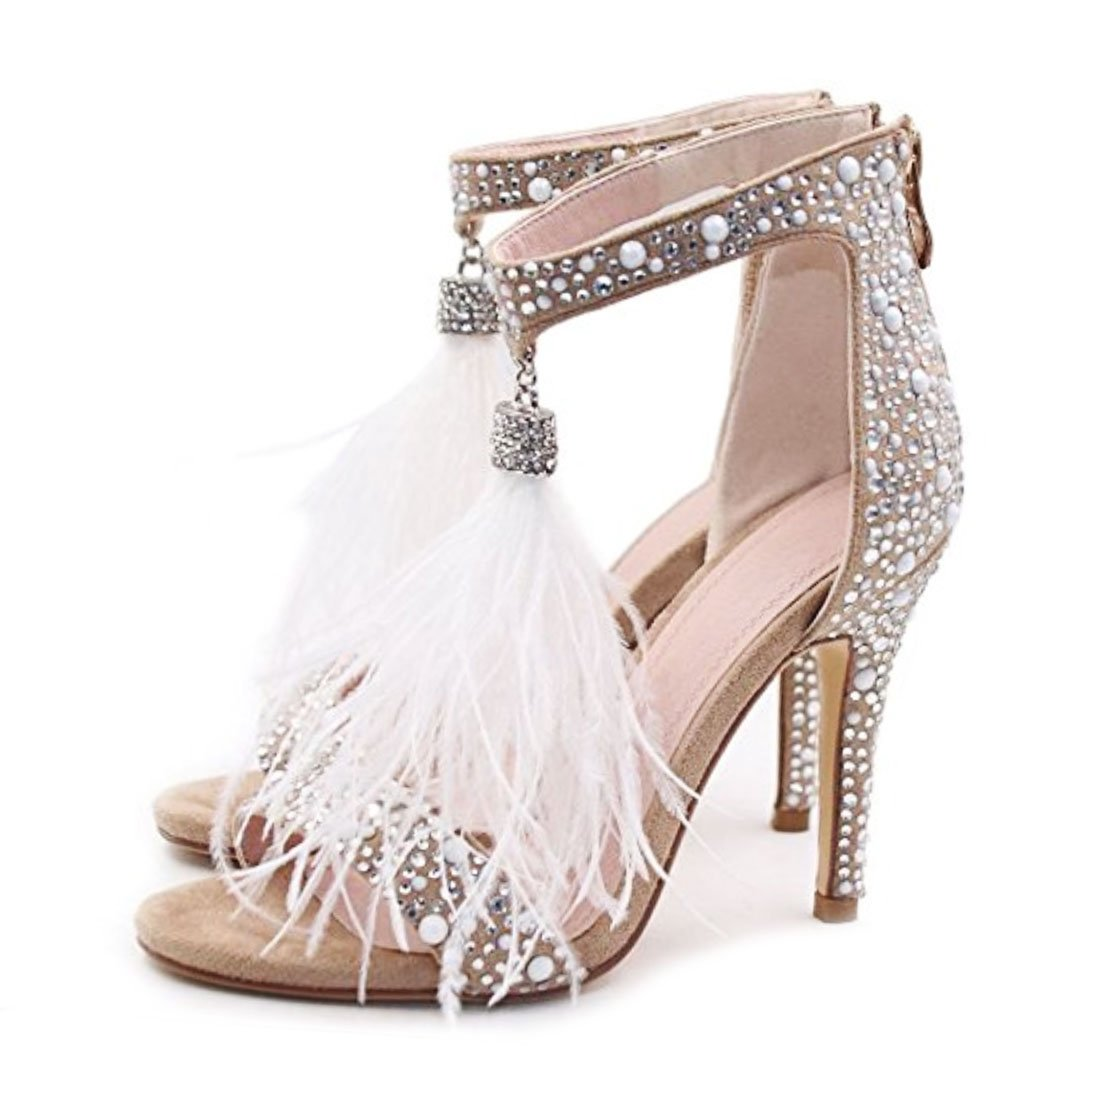 Wedding Sandals For Bride.Wedding Shoes For Bride White Rhinestones Tassel Wedding Dress Shoes Open Toe High Heel Sandals Bride Bridesmaid Shoes Prom Fashion Tapered High Heel